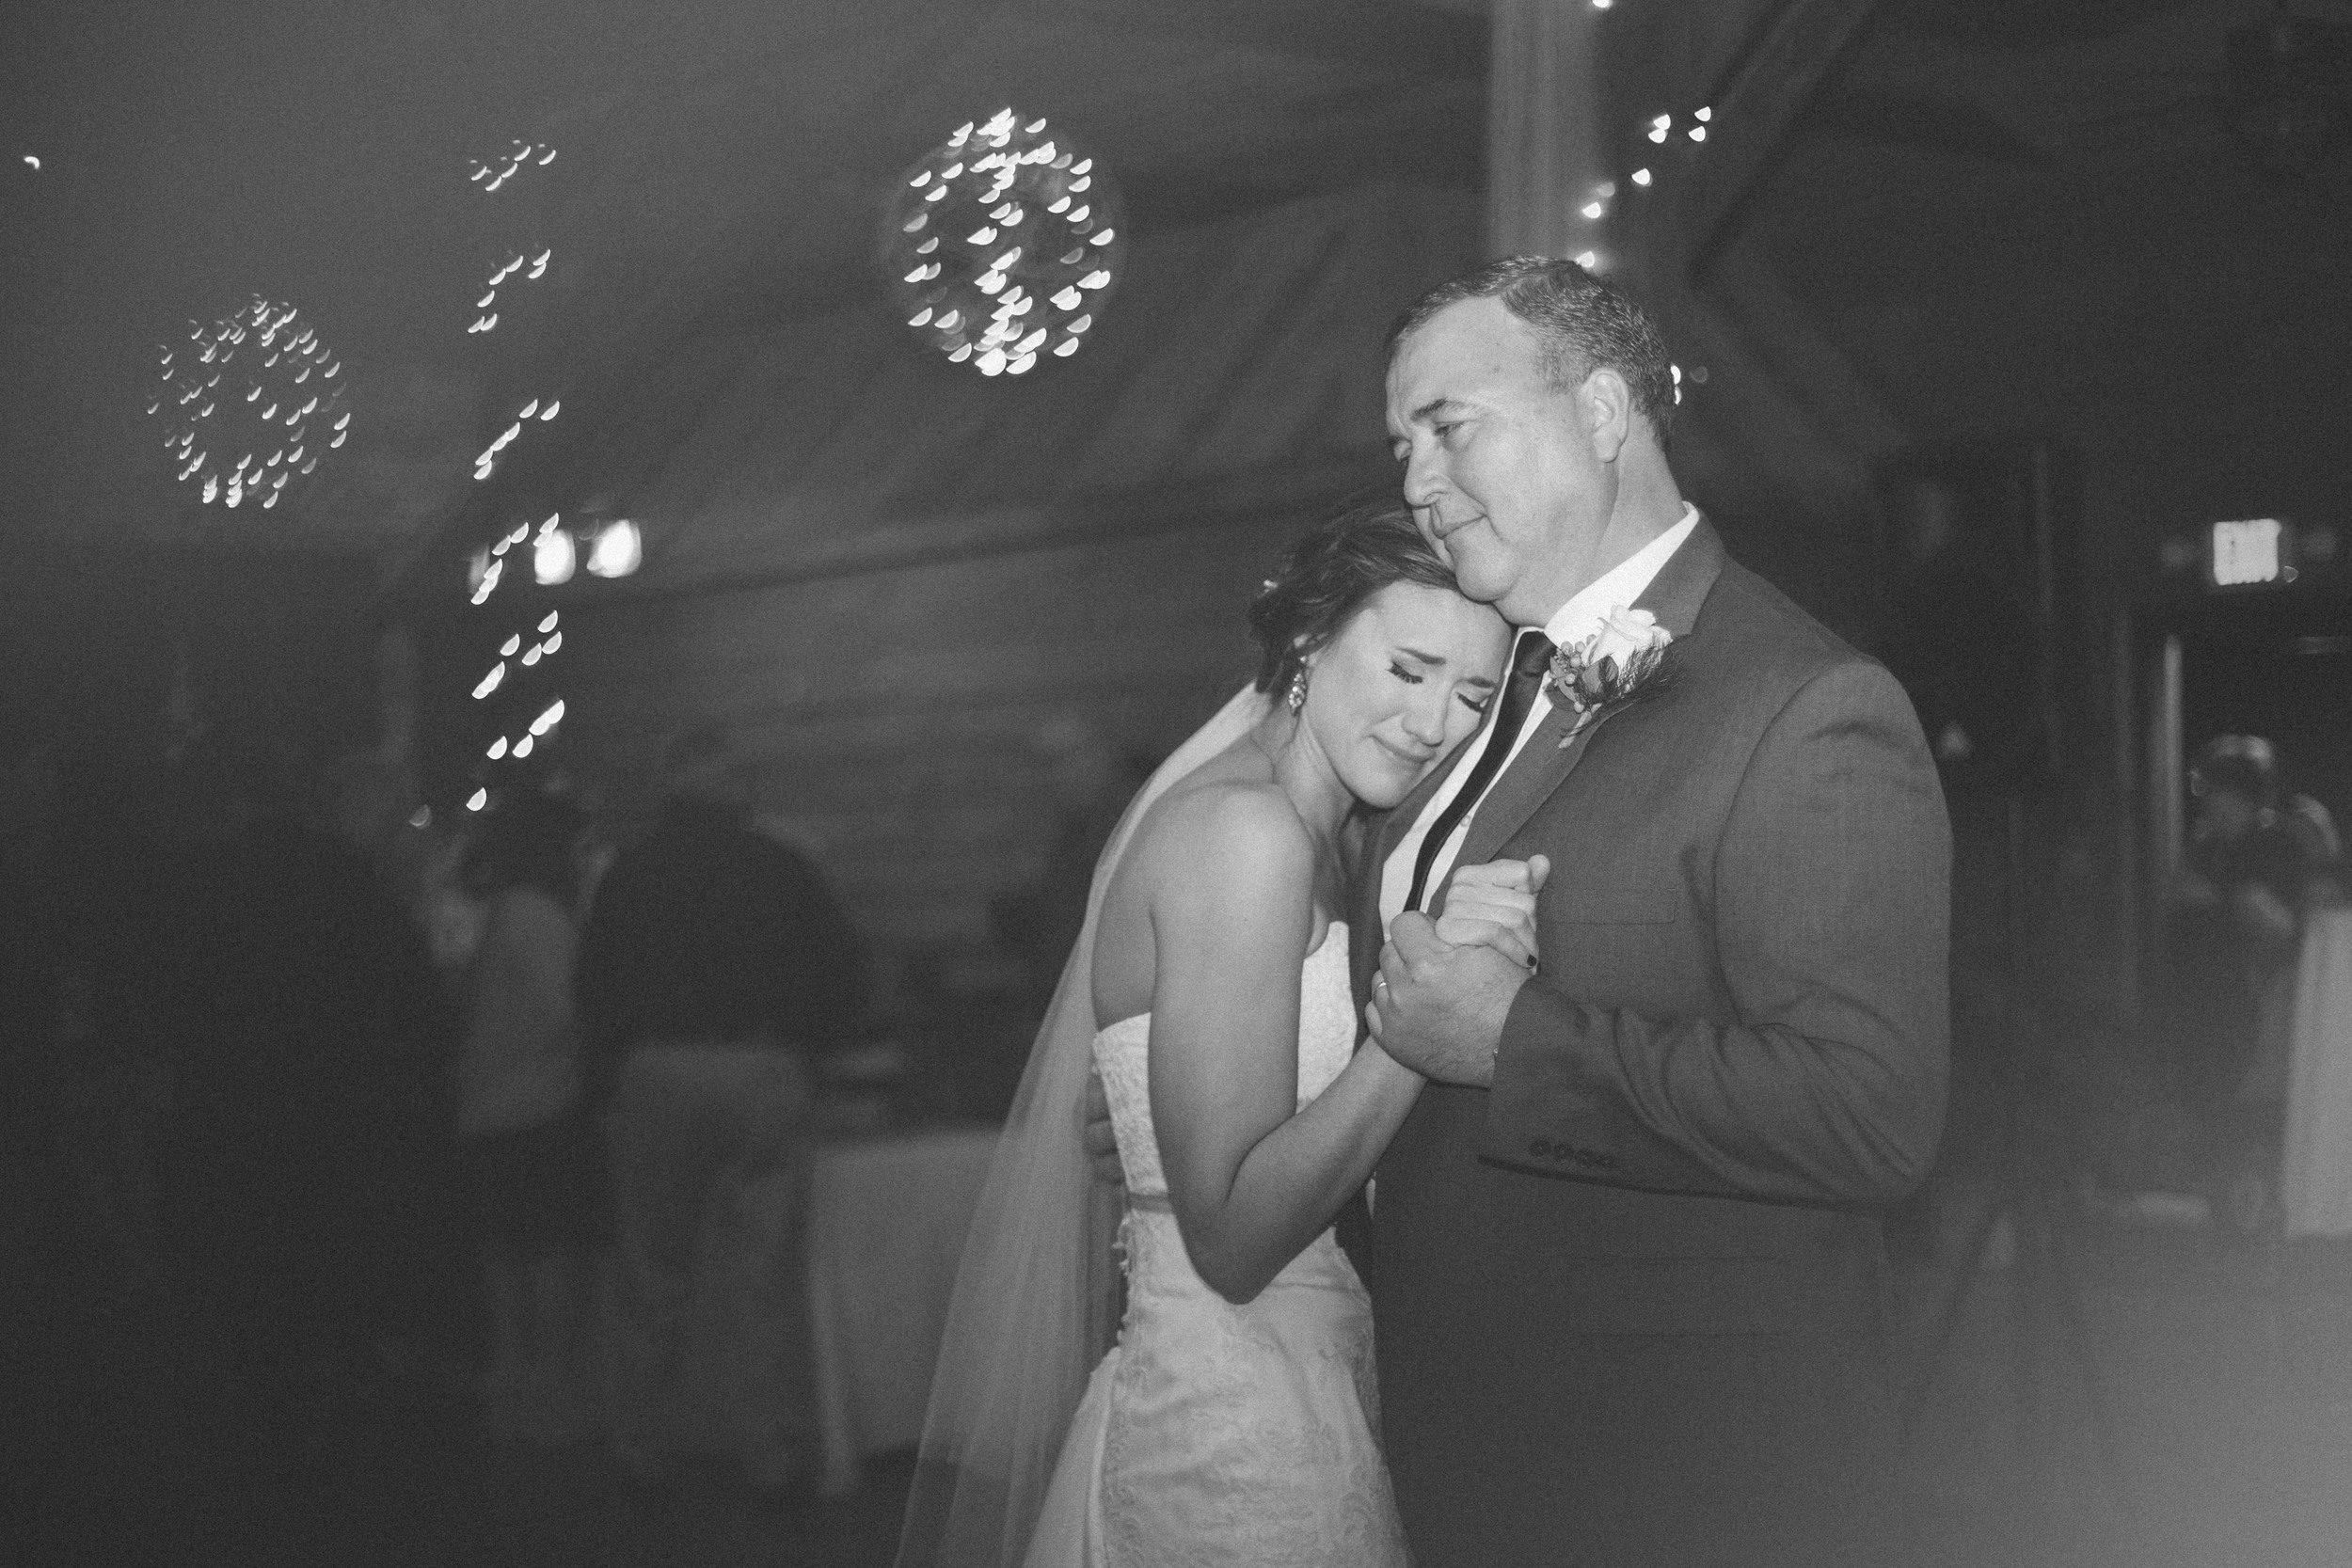 ofRen_louisianaweddings099.JPG